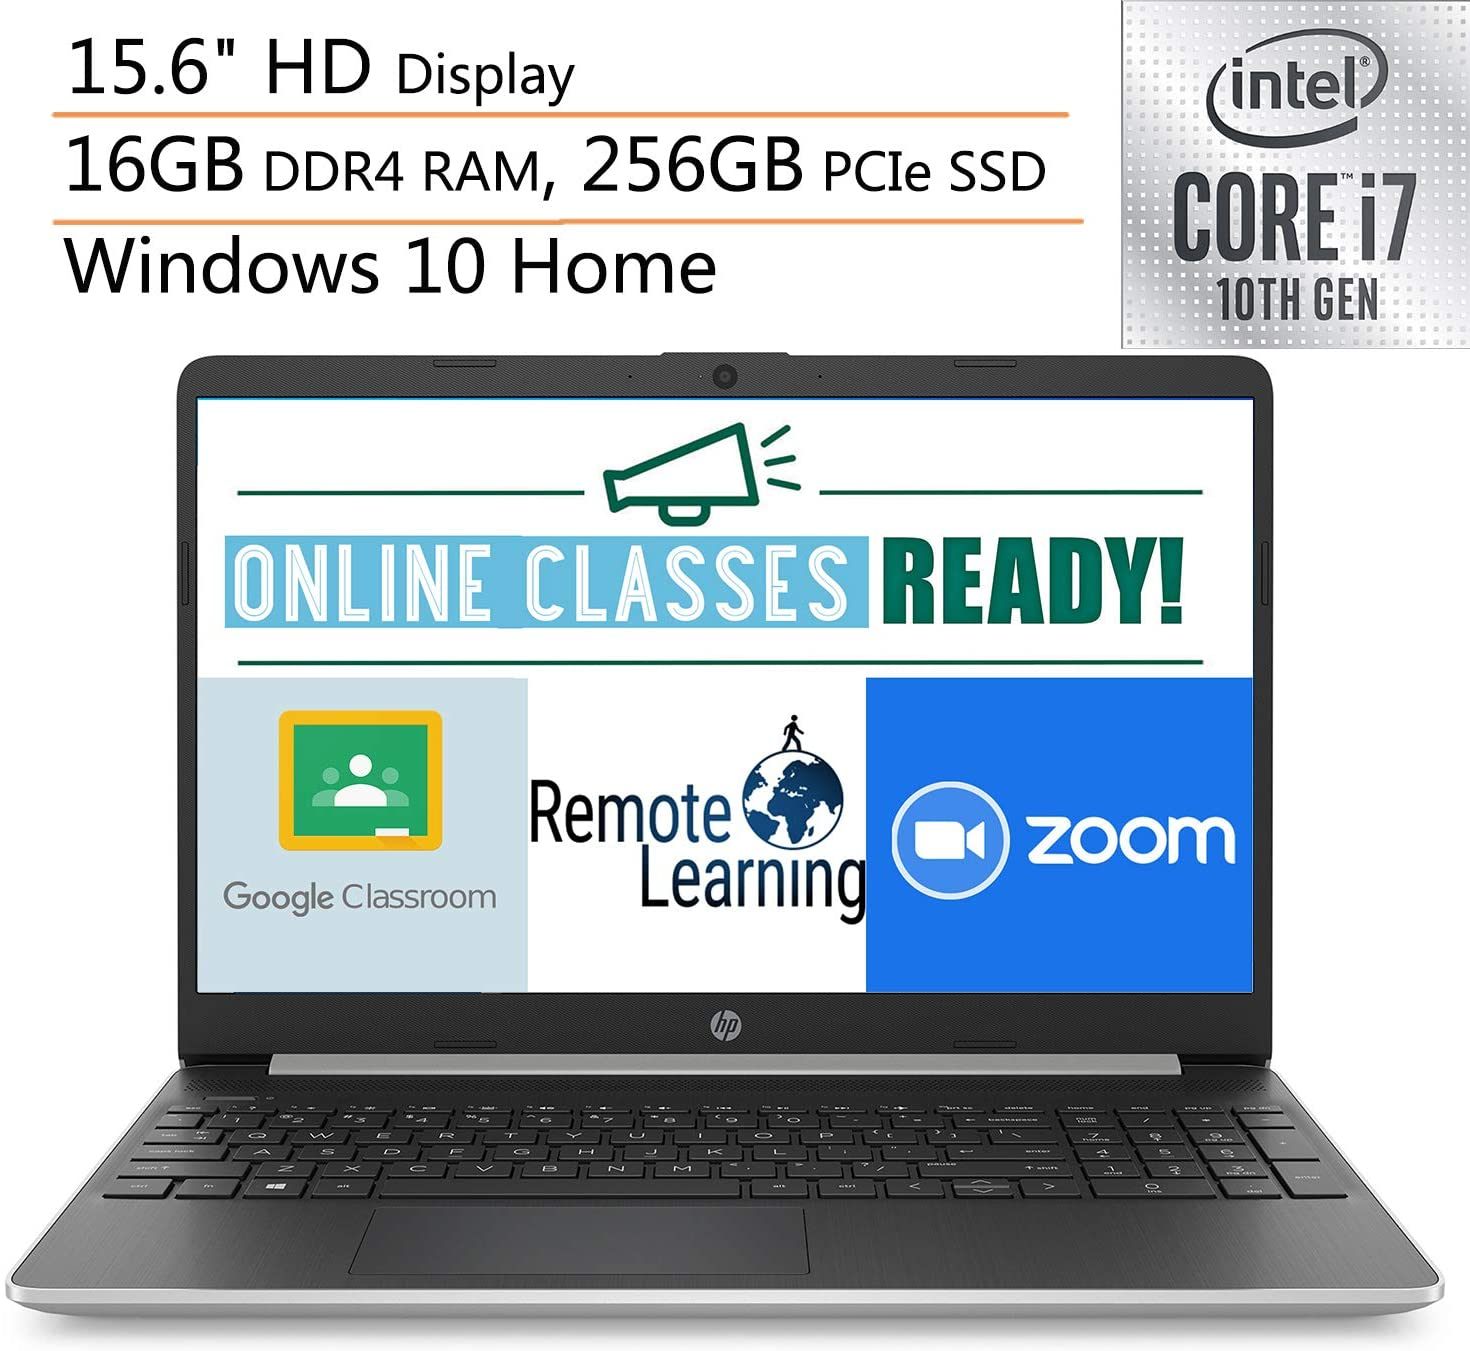 2020 HP 15 15.6 Laptop Computer, 10th Gen Intel Quard-Core i7 1065G7 up to 3.9GHz, 16GB DDR4 RAM, 256GB PCIe SSD, 802.11AC WiFi, Microphone, Webcam, Online Class Ready, Windows 10, iPuzzle Mousepad